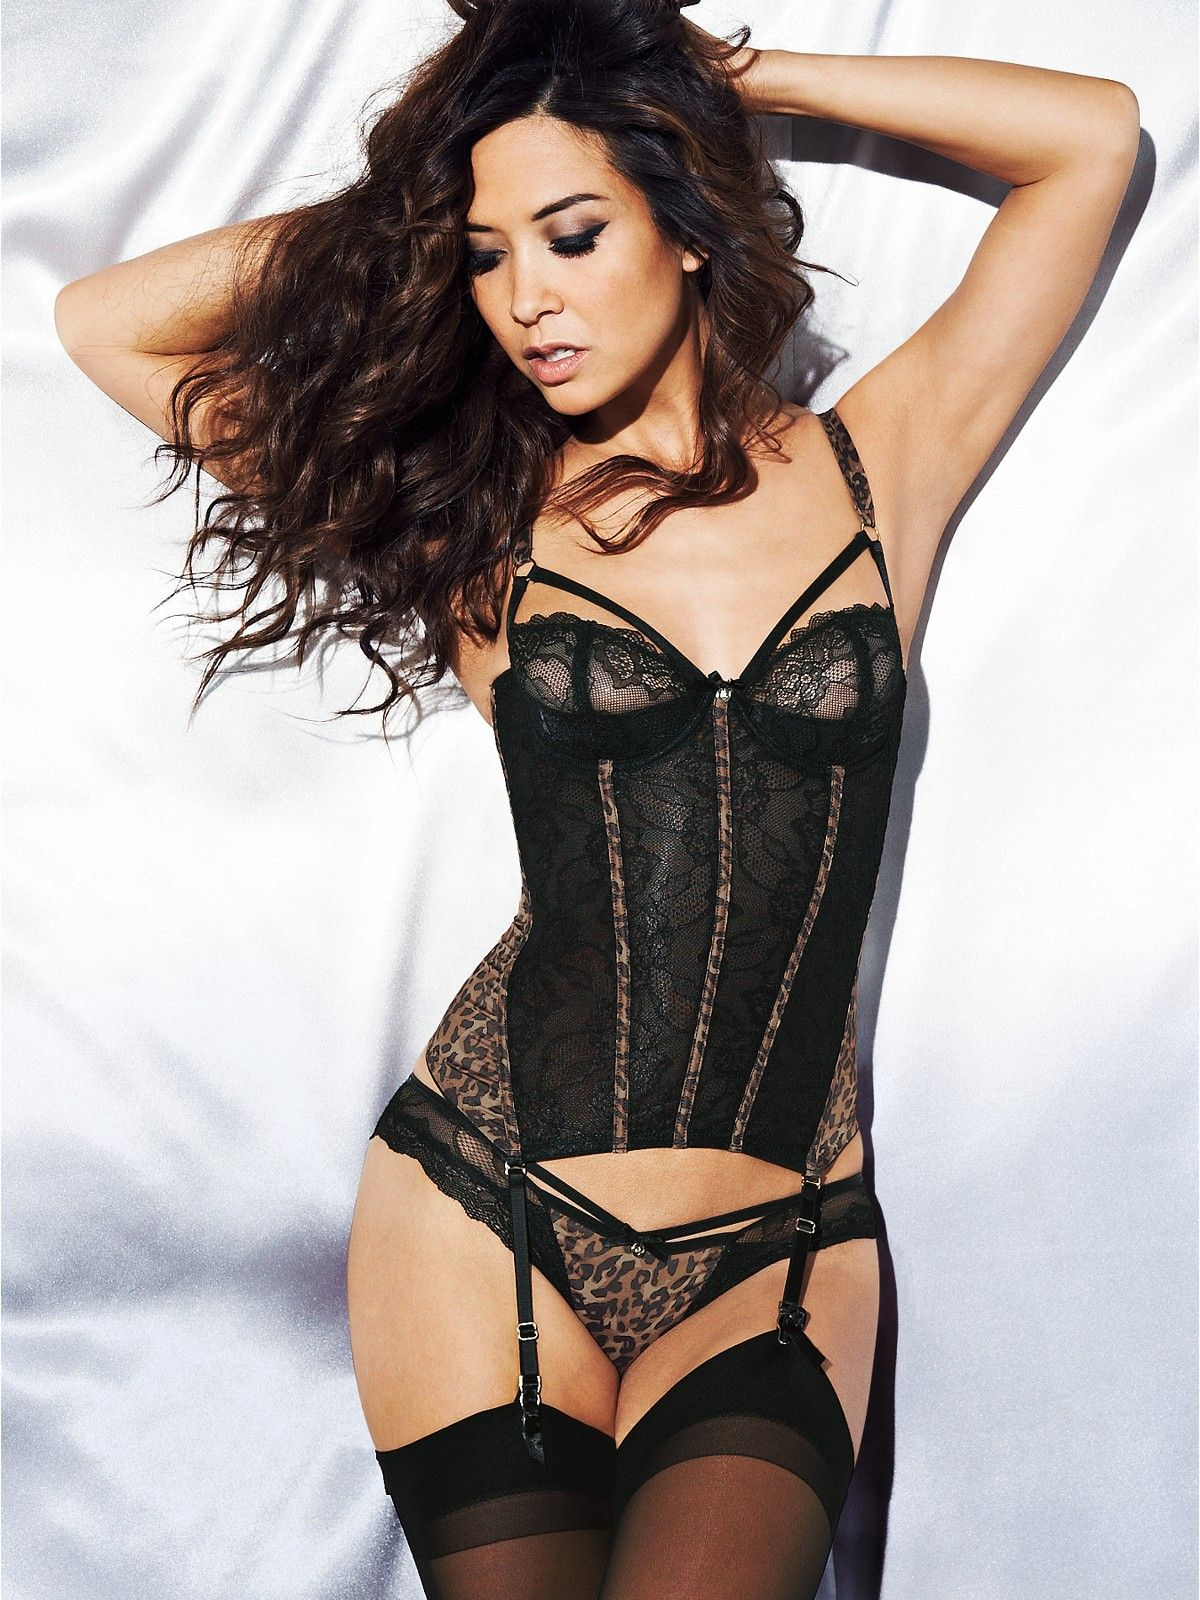 f7f4b5cf1 Myleene Klass Satin and Lace Basque Big Guys, Glamour Pics, Glamour  Lingerie, Women